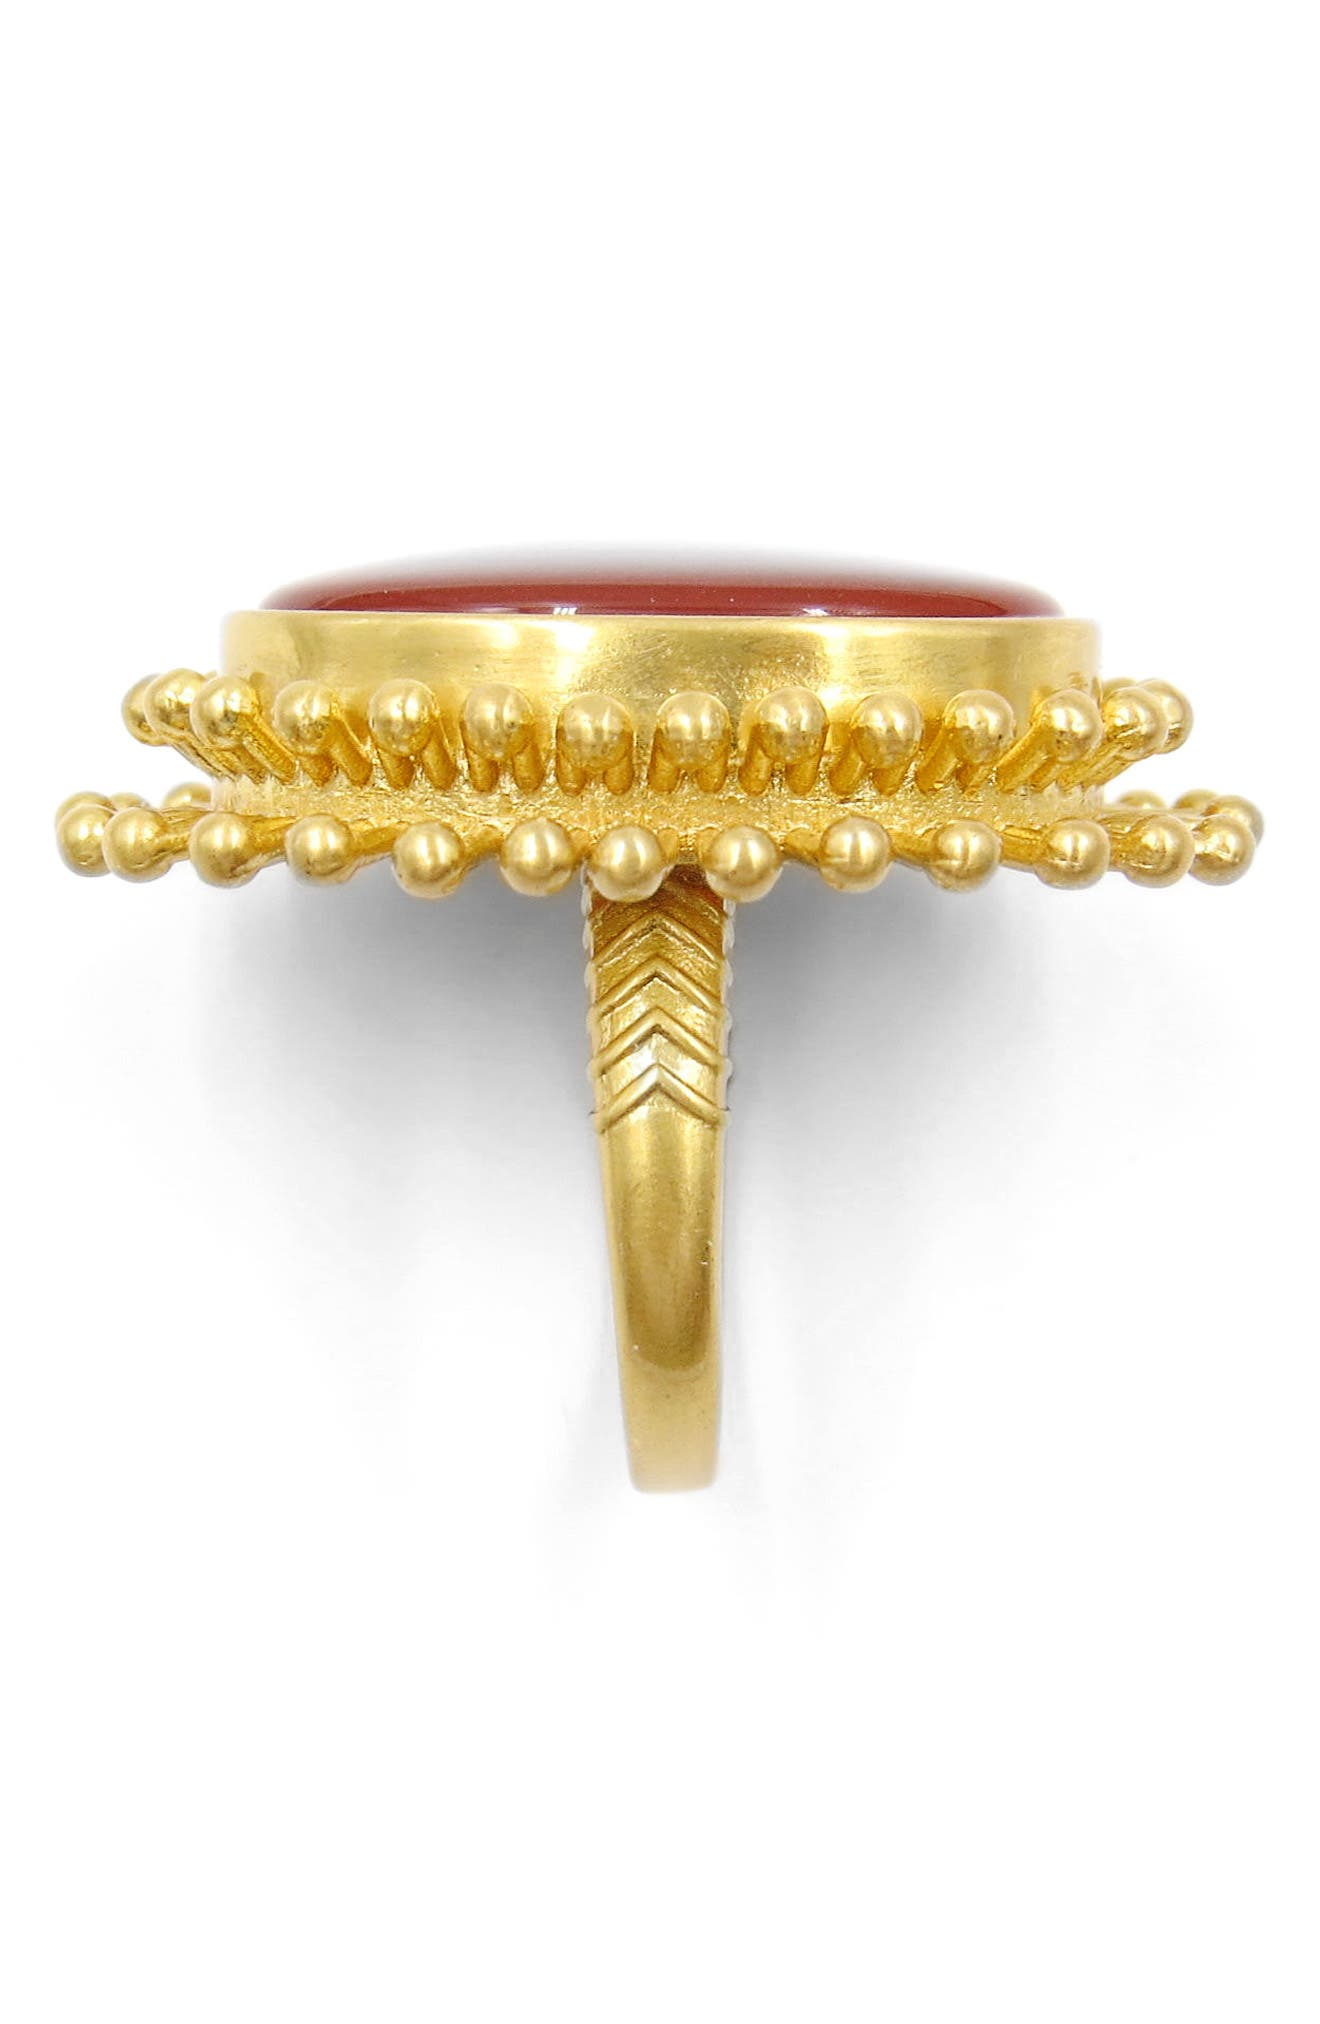 Agate Cocktail Ring,                             Alternate thumbnail 2, color,                             710